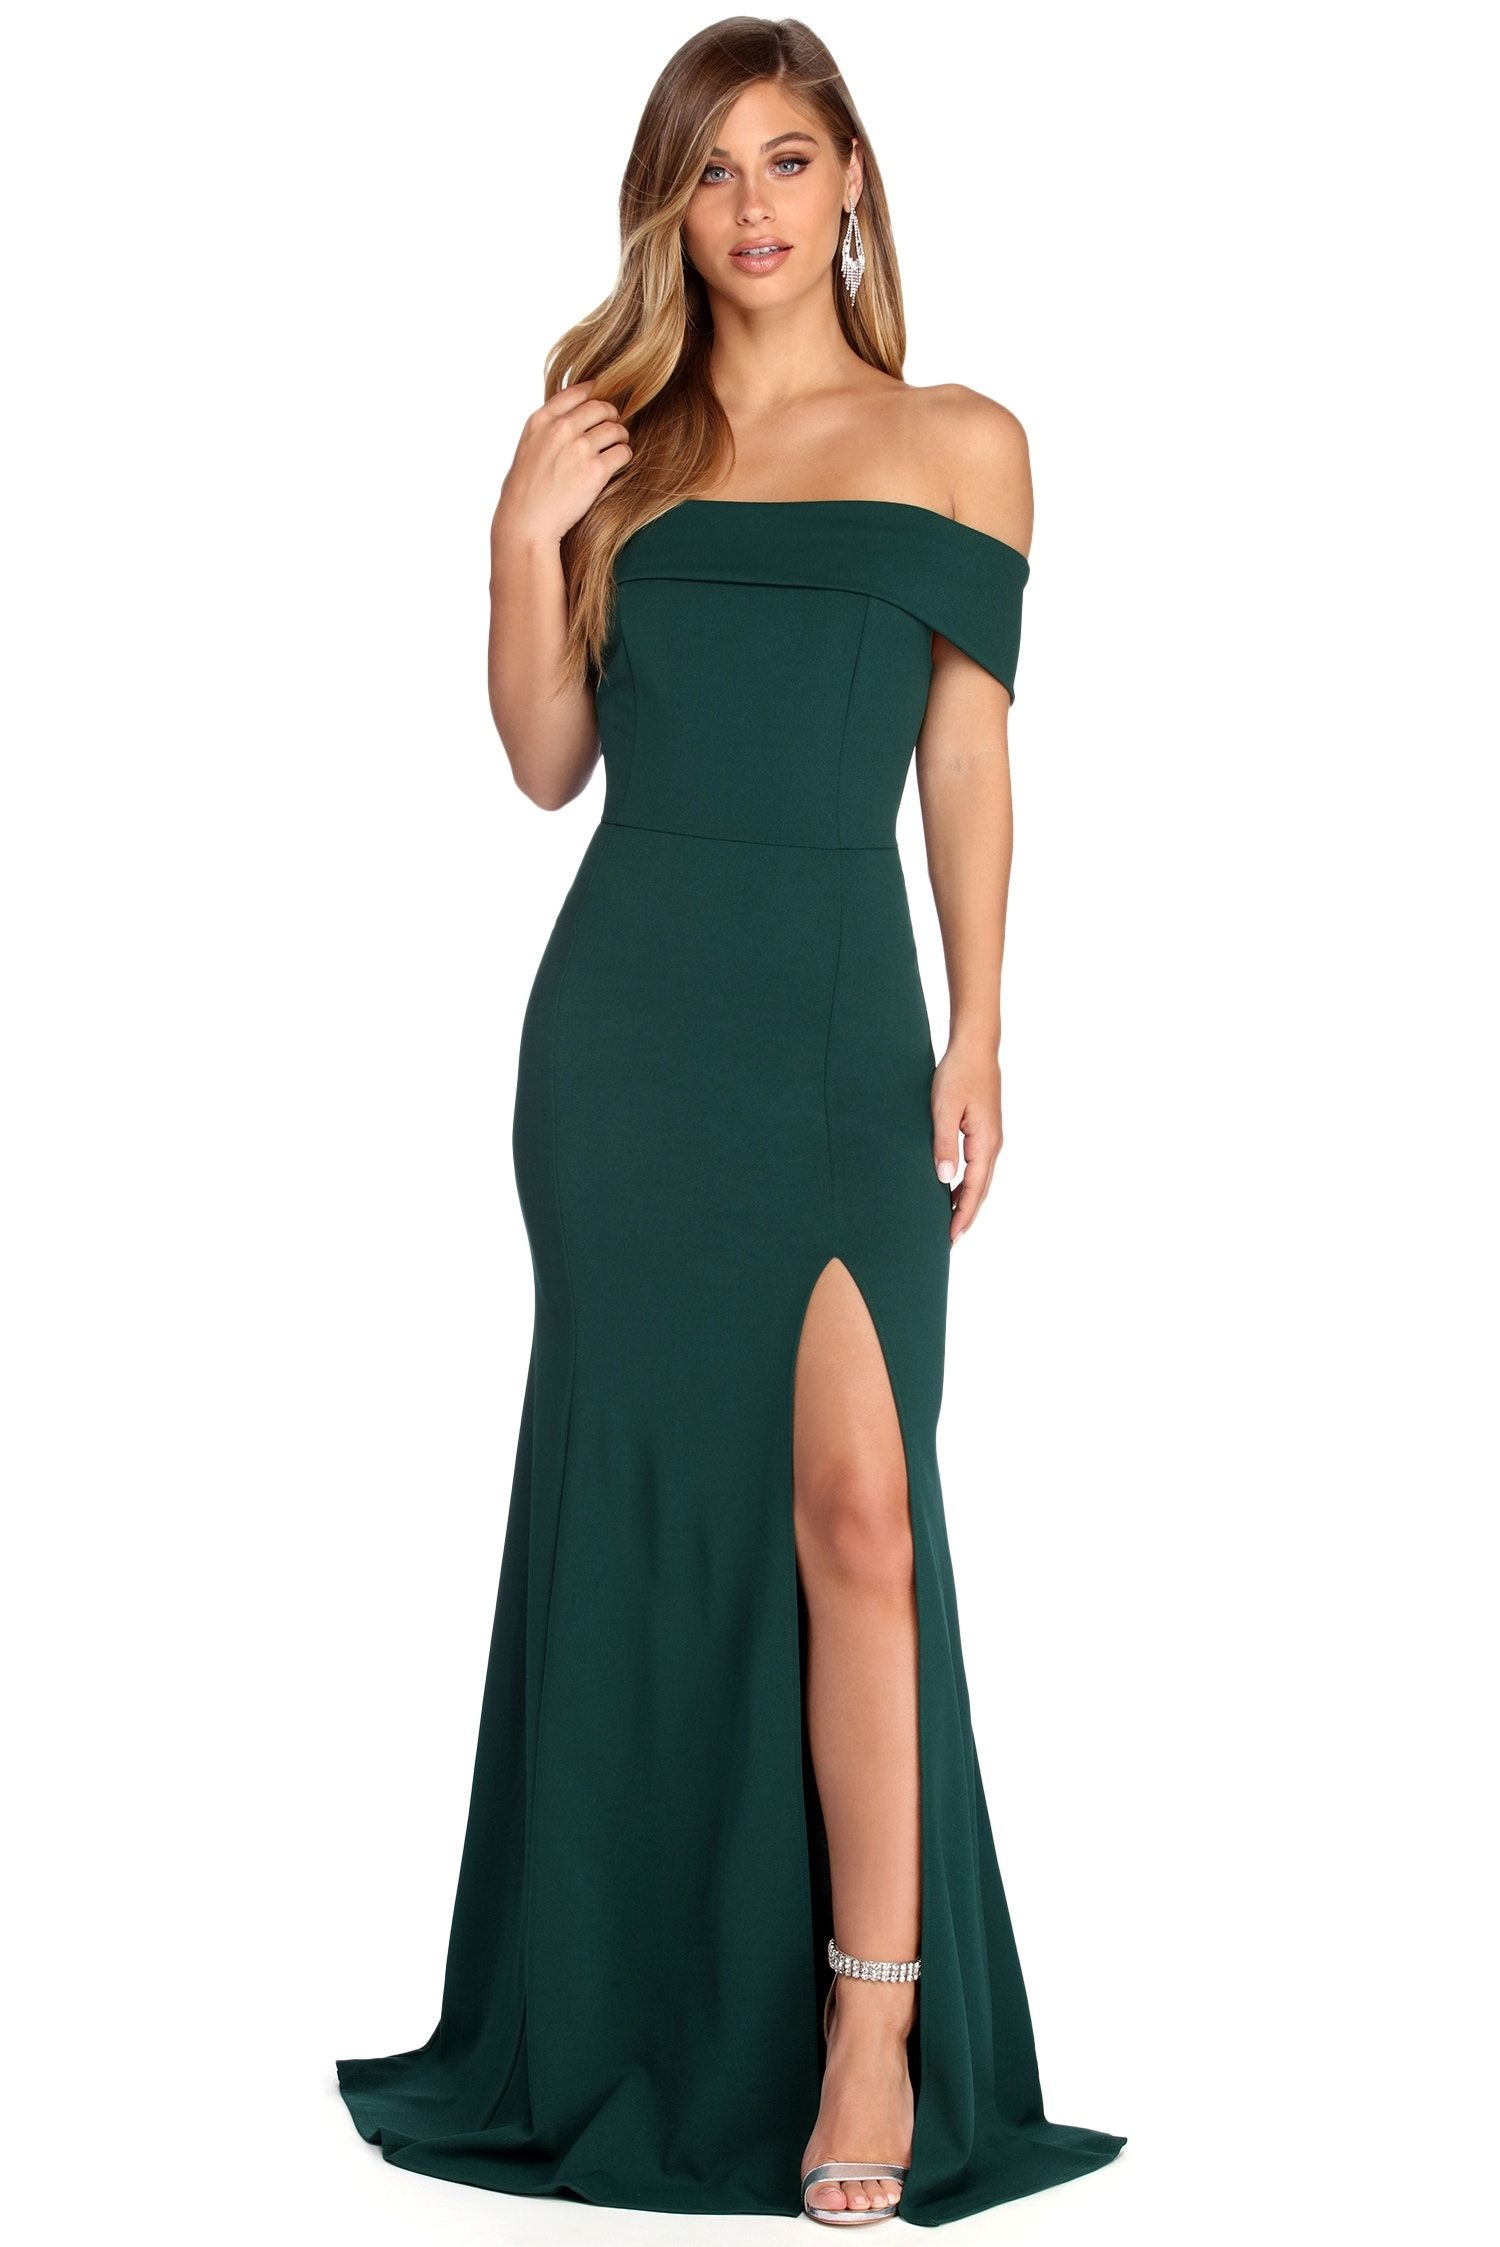 321eb0d82004 Layci Formal High Slit Dress in 2019 | Events & Parties | High slit ...